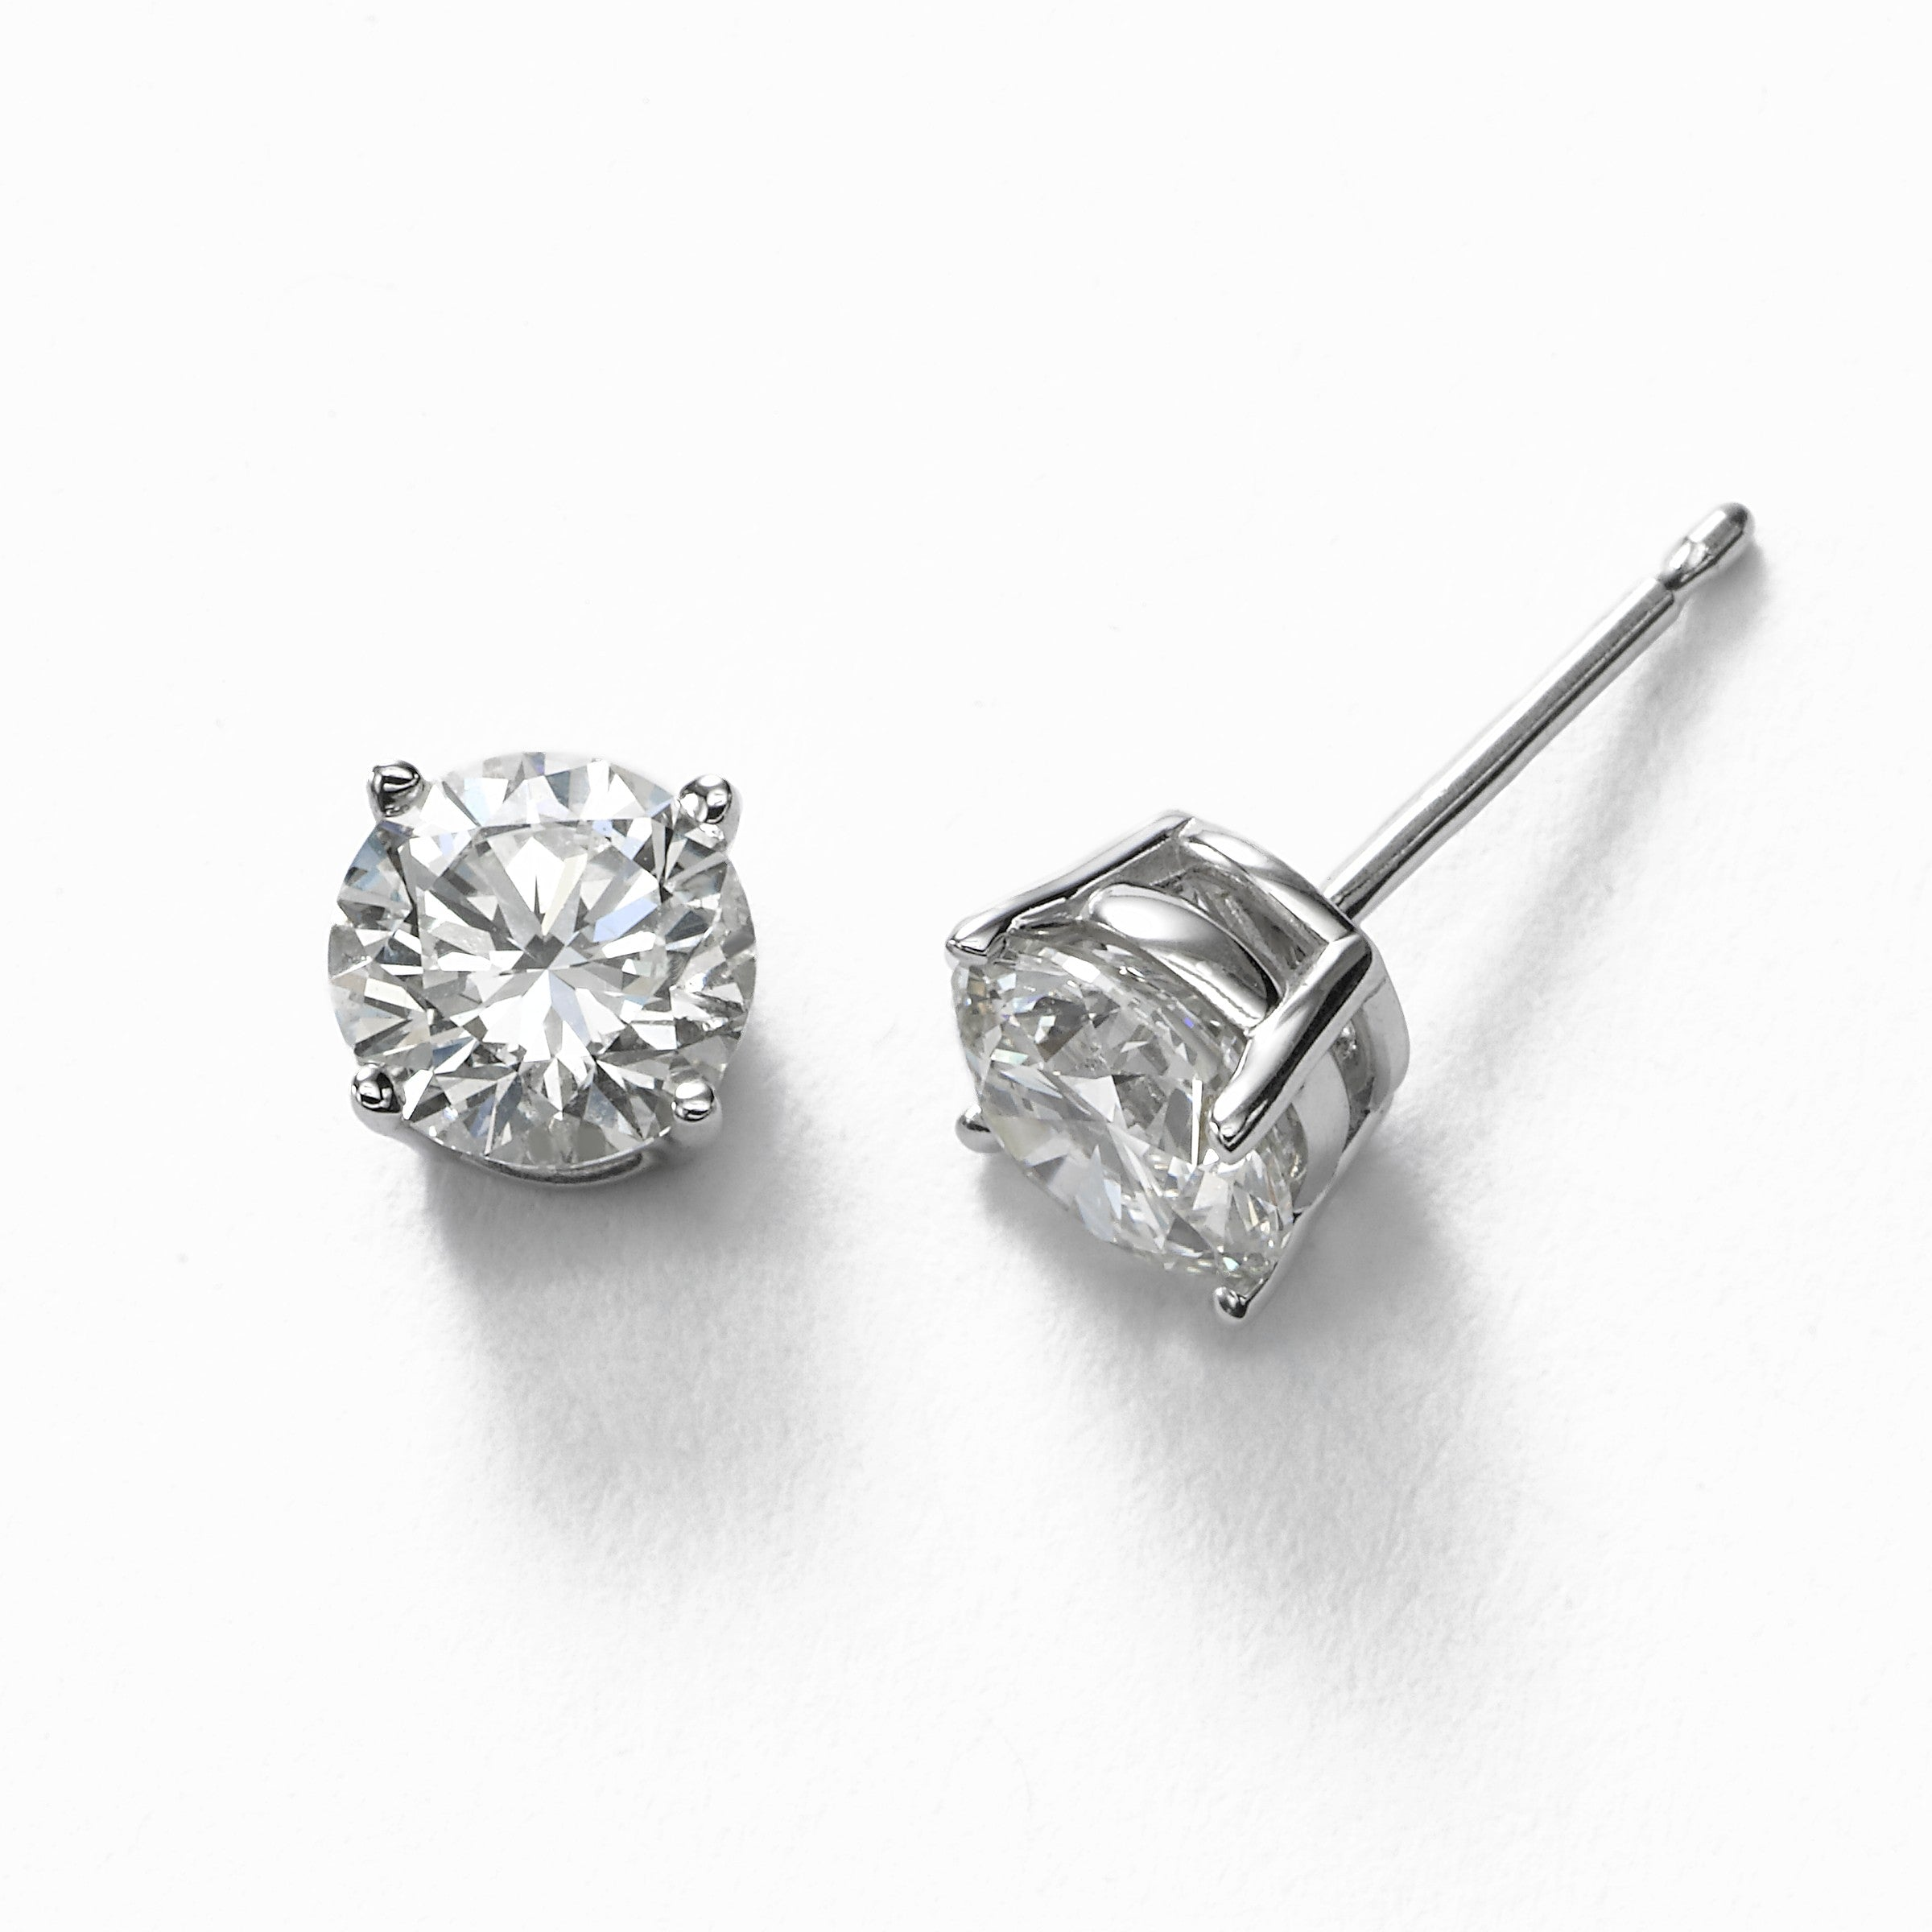 Diamond Stud Earrings, 1.50 Carats total, H/I-SI1, 14K White Gold